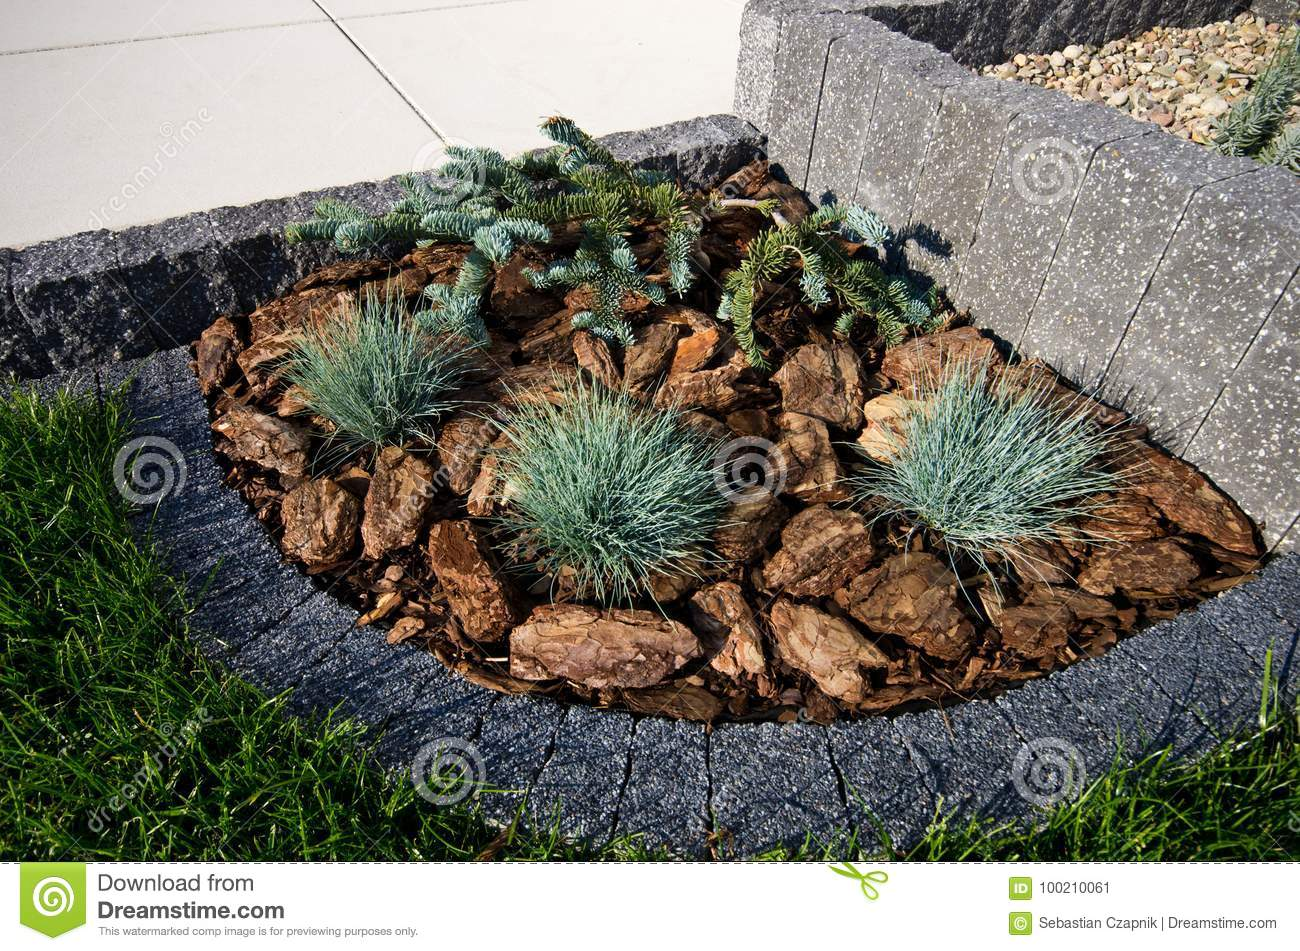 House Corner Design Idea Stone Framing As Flowerbed Evergreens And Lavender Plants Terrace Stock Image Image Of Shaped Bark 100210061